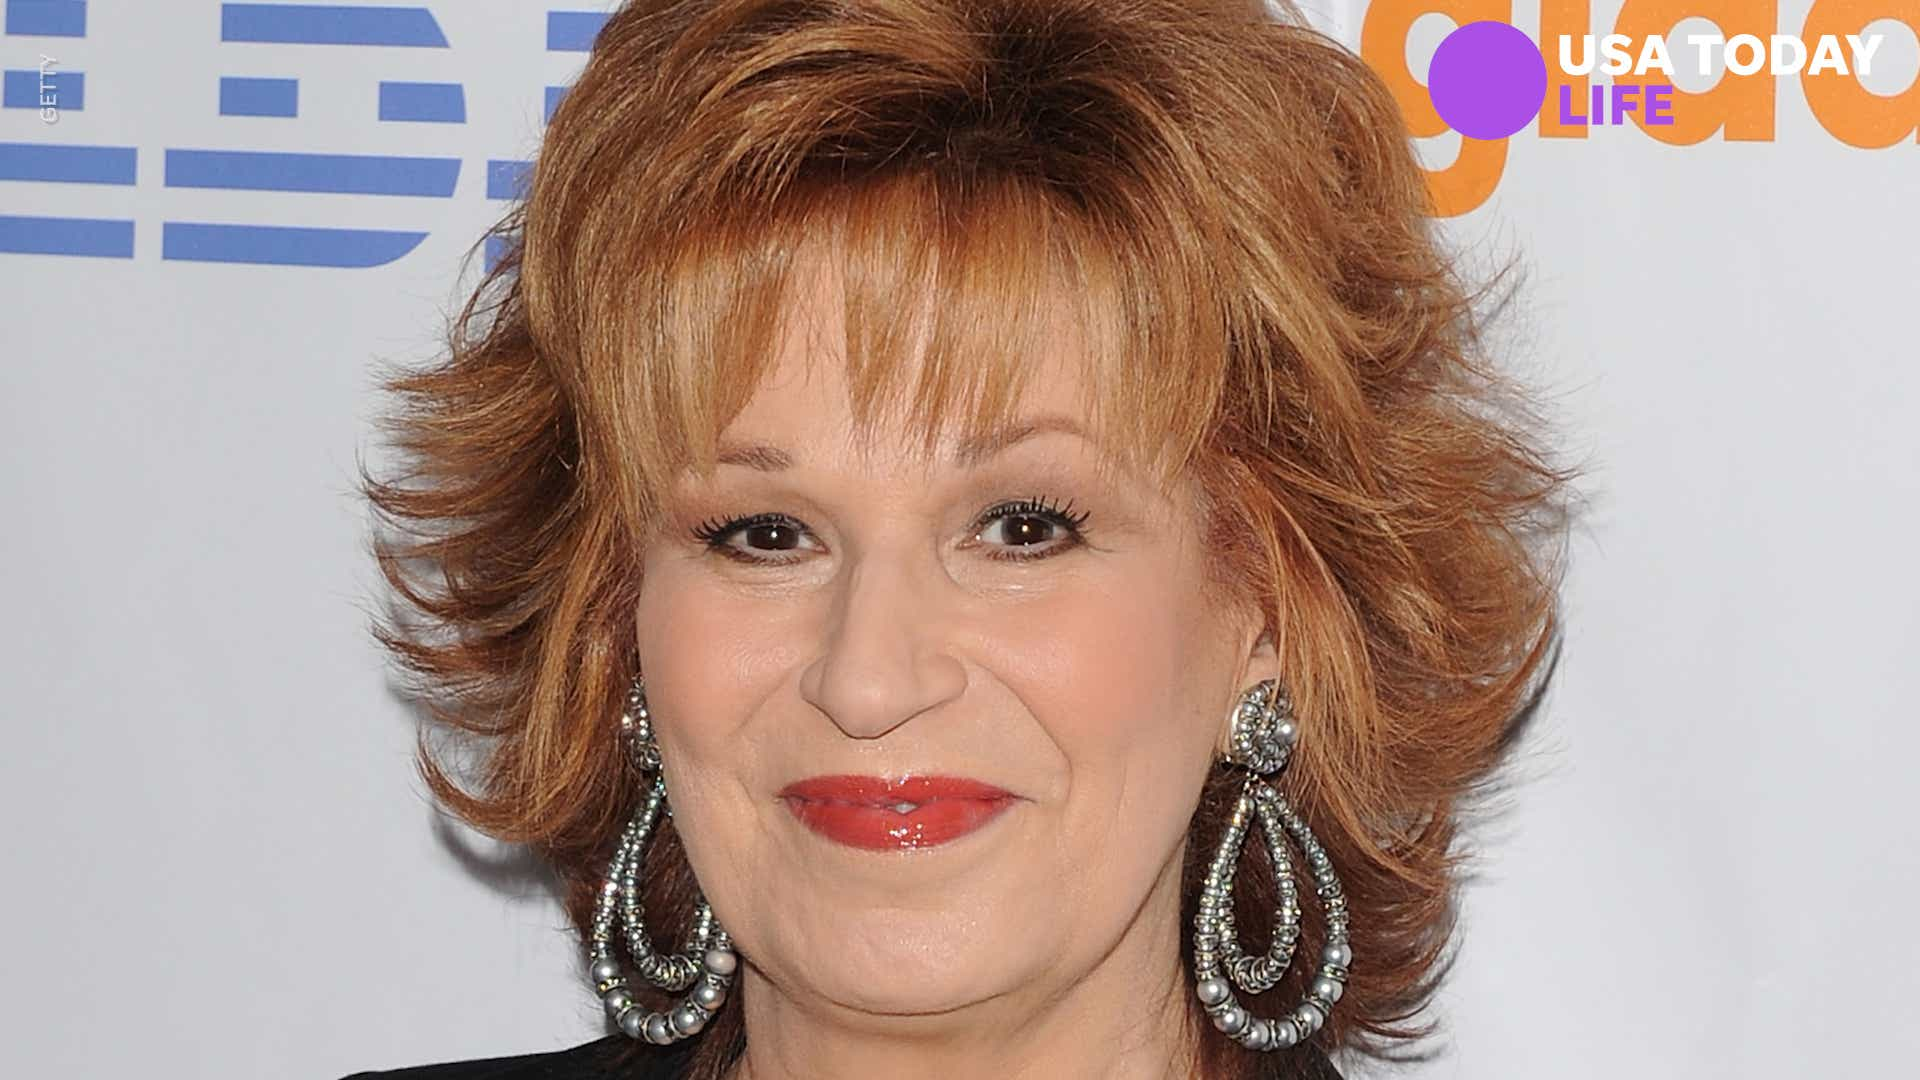 View': Joy Behar silent on old photo of her dressed as African woman